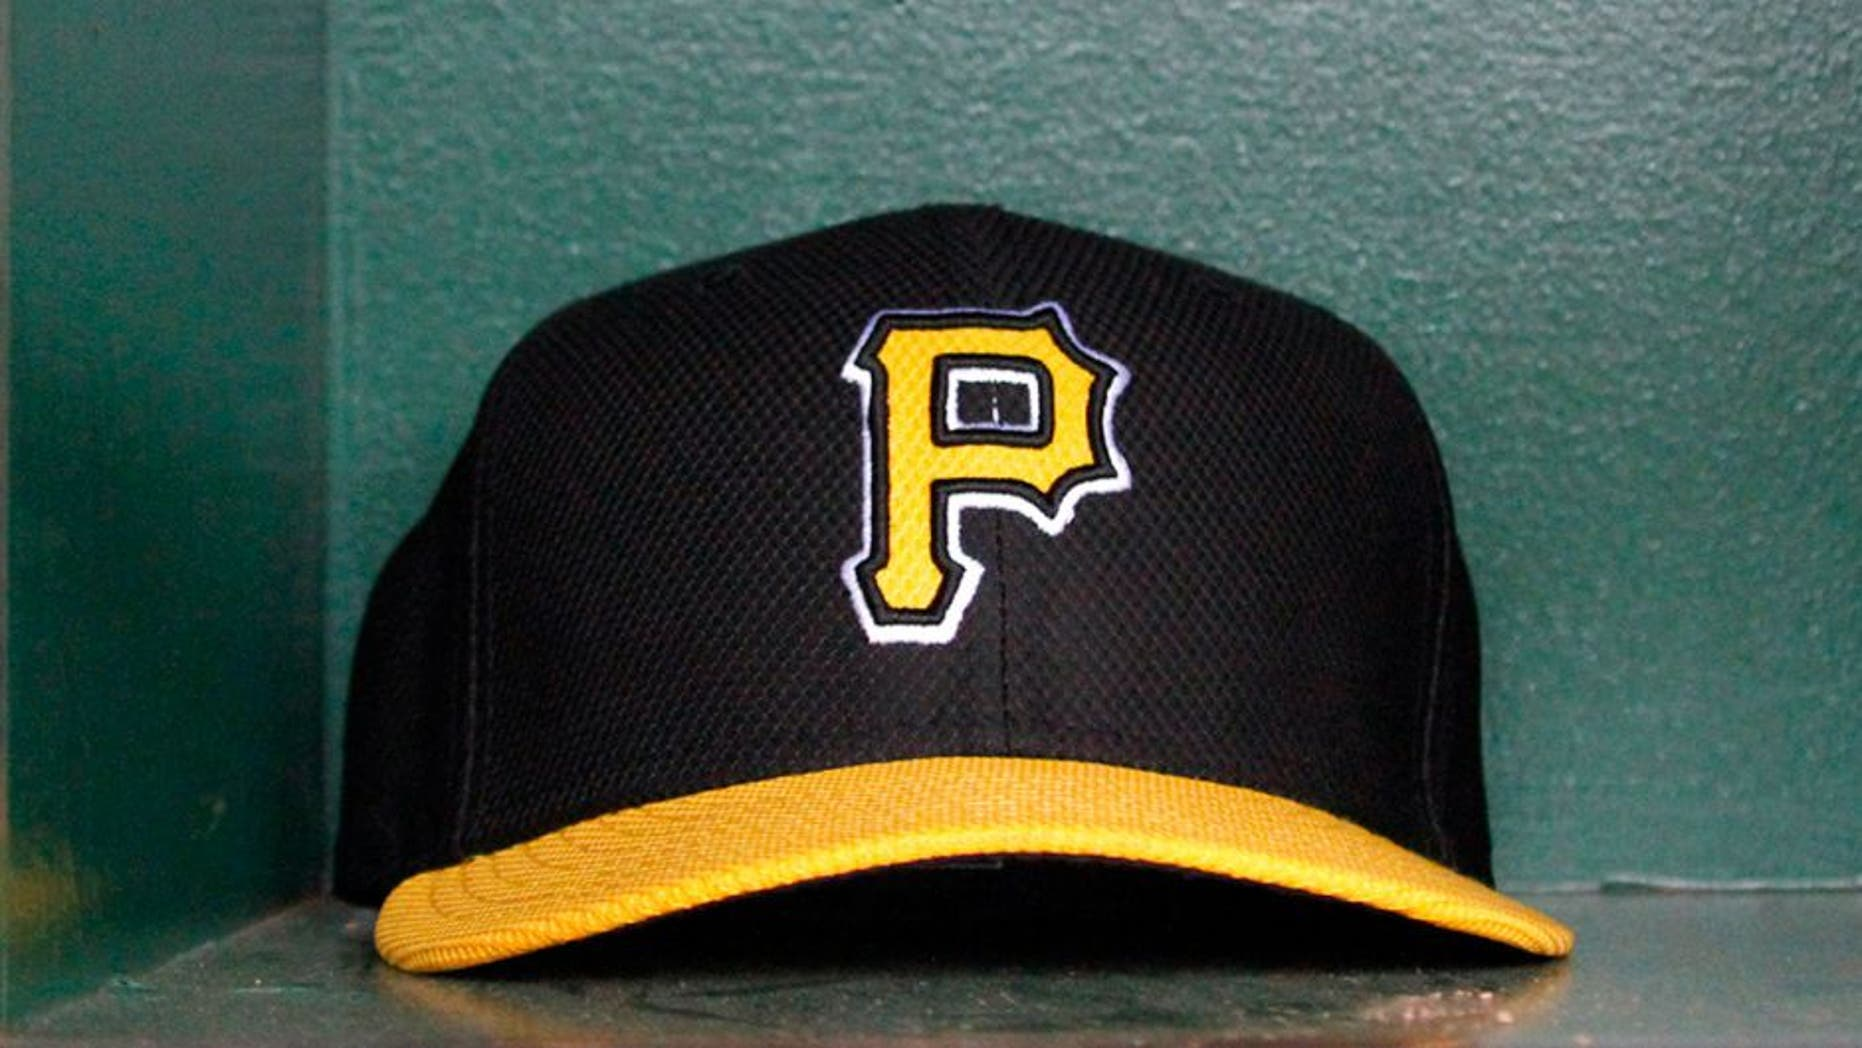 PITTSBURGH, PA - APRIL 18: A detailed view of a hat before the game between the Pittsburgh Pirates and the Atlanta Braves on April 18, 2013 at PNC Park in Pittsburgh, Pennsylvania. (Photo by Justin K. Aller/Getty Images)